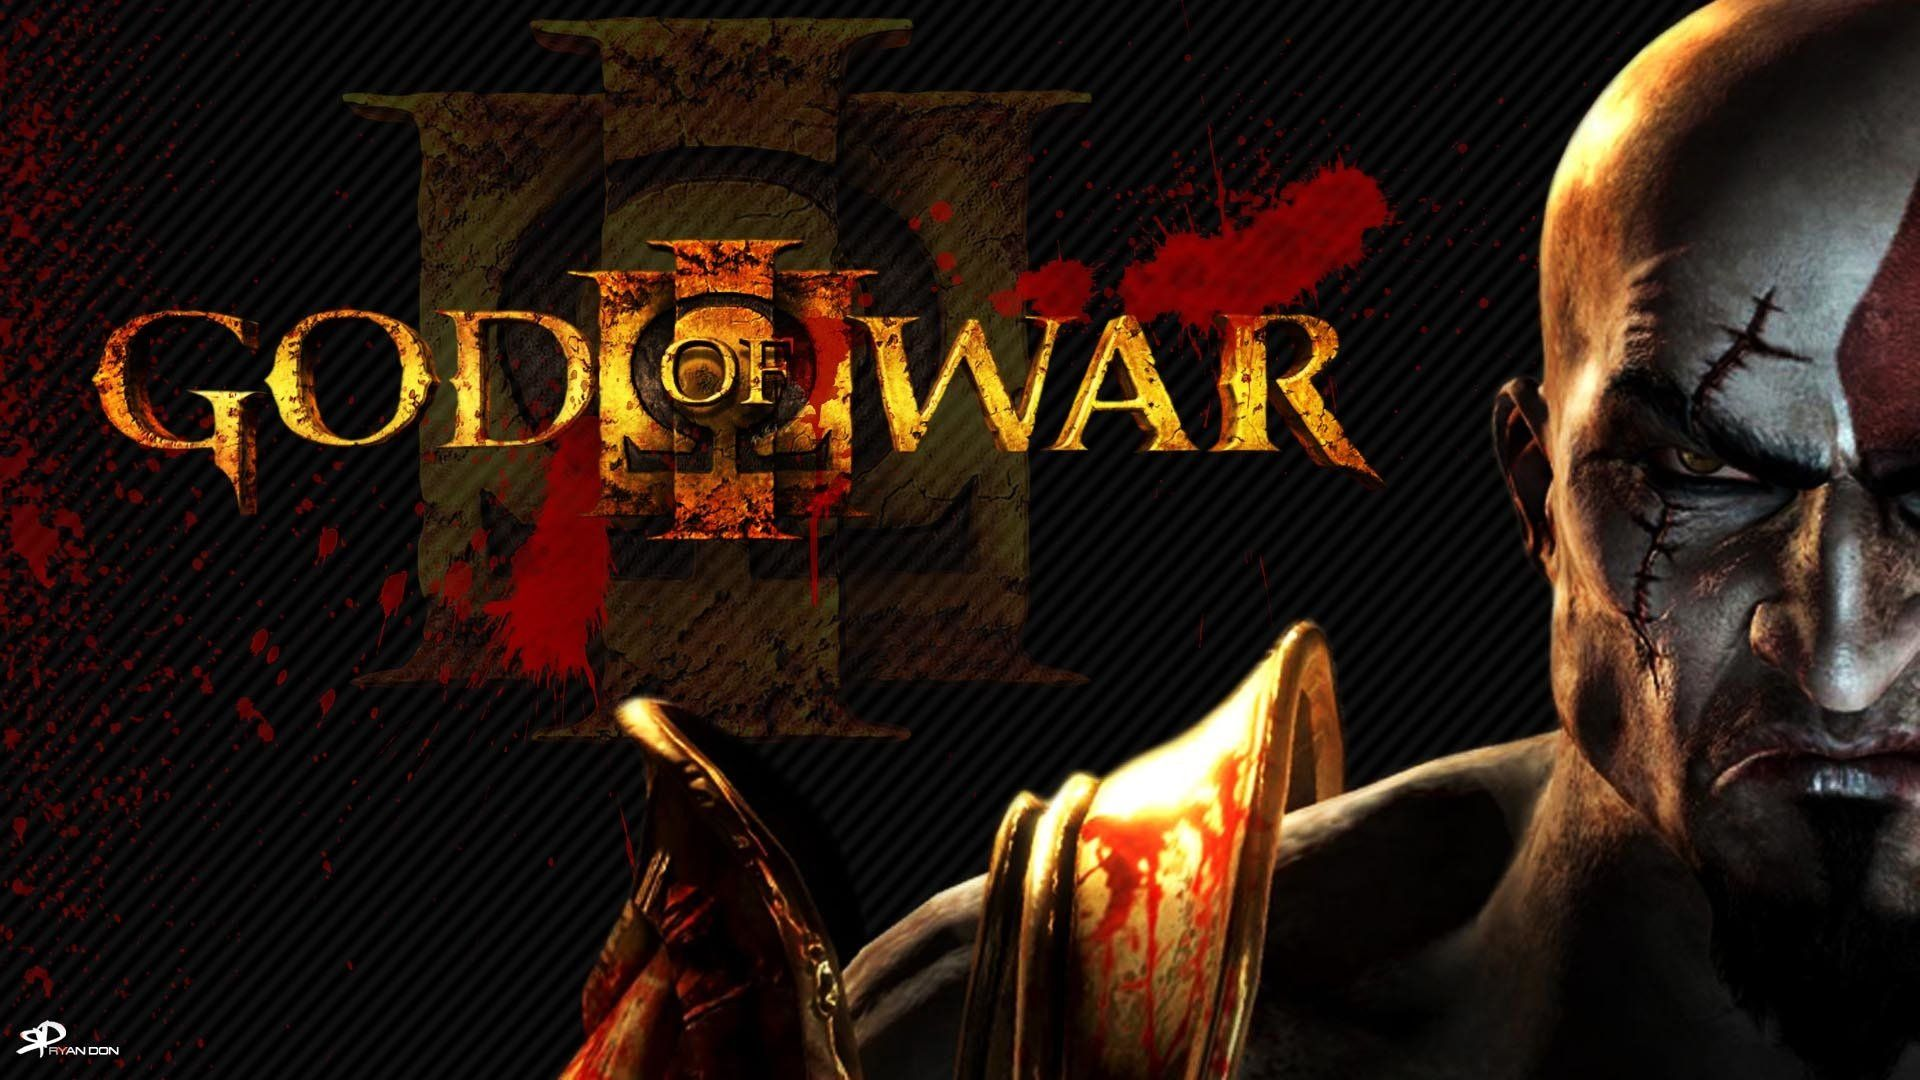 God of War 3 Wallpapers - Top Free God of War 3 Backgrounds